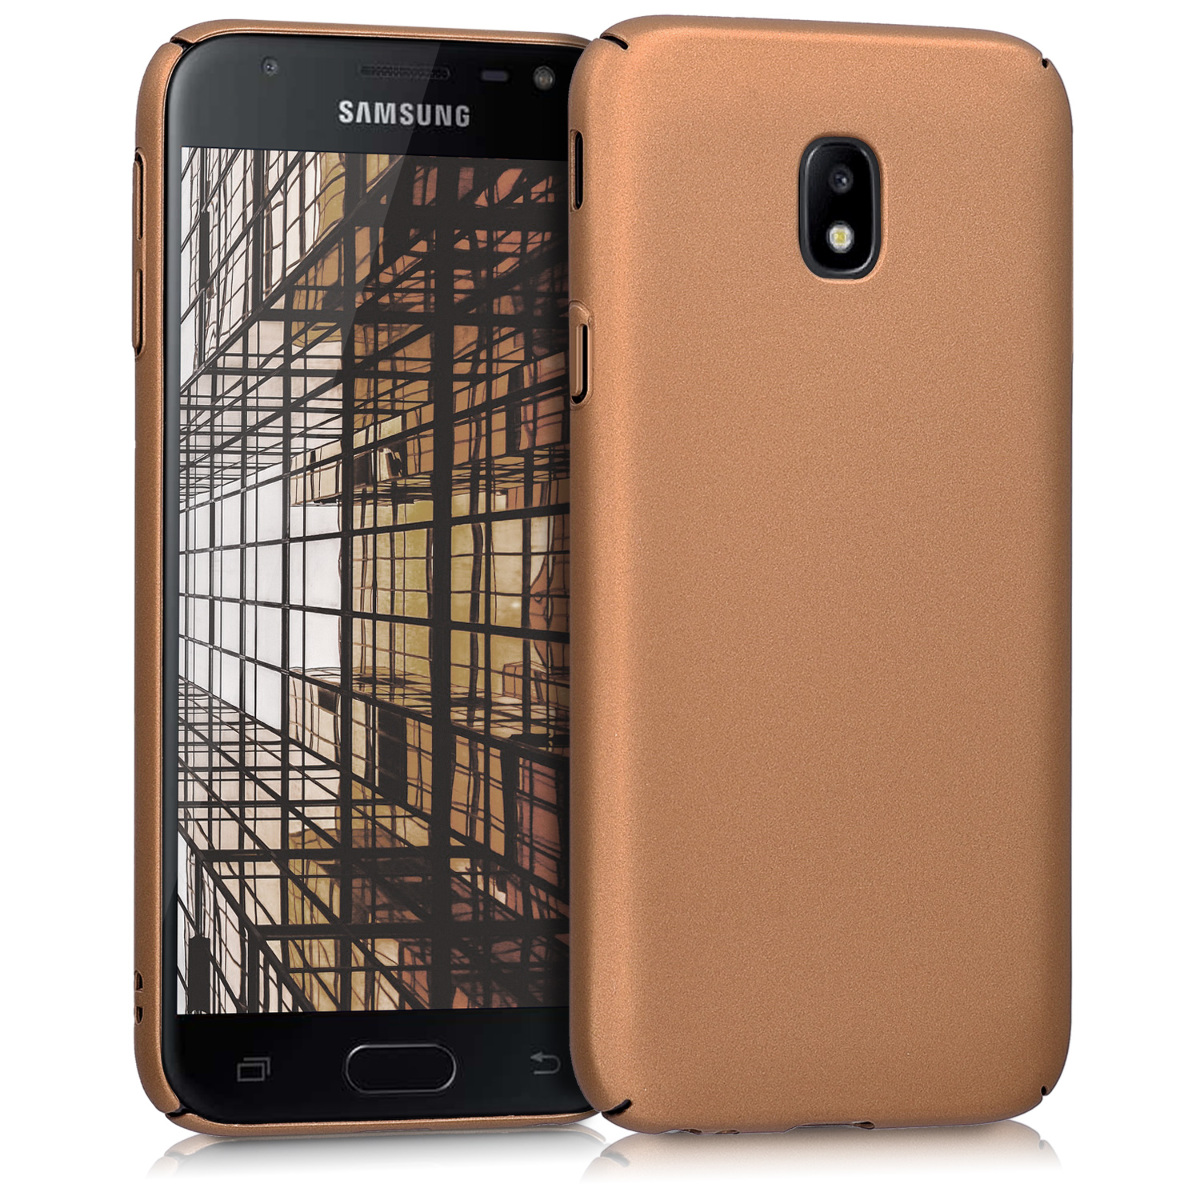 KW Slim Anti-Slip Cover - Σκληρή Θήκη Καουτσούκ Samsung Galaxy J3 (2017) - Metallic Copper (42760.27)